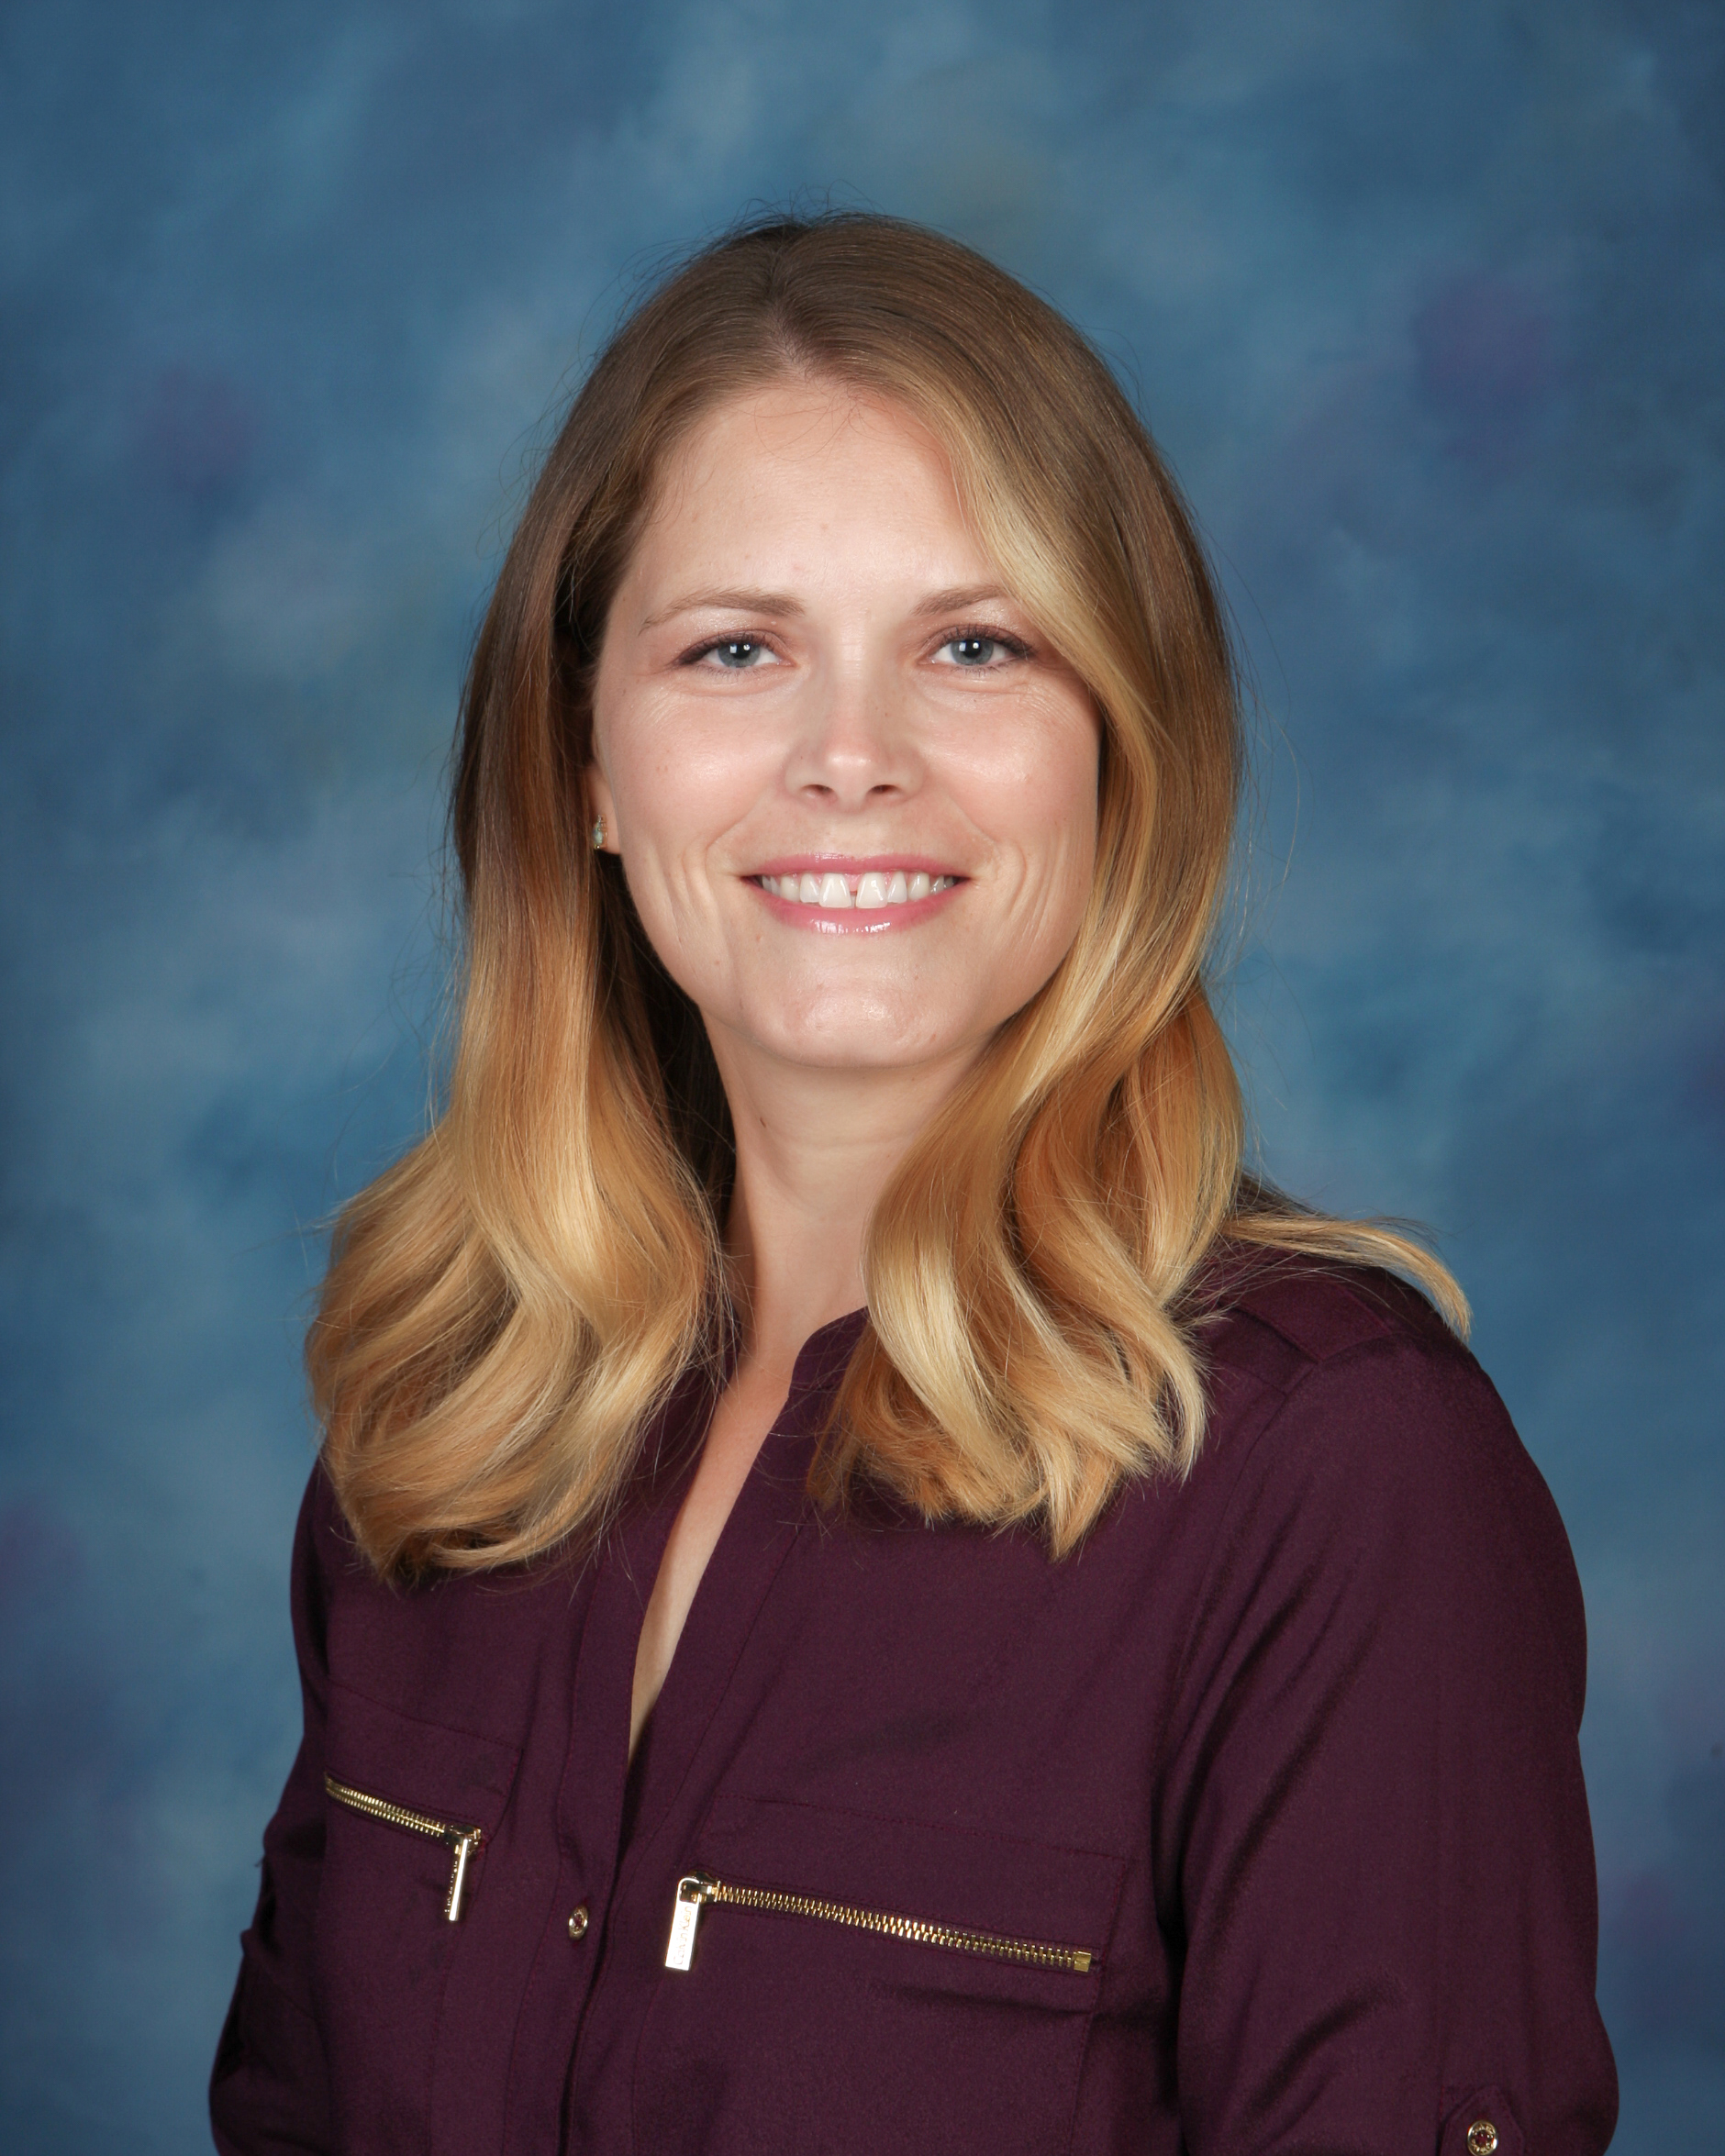 Headshot of Principal Dennert